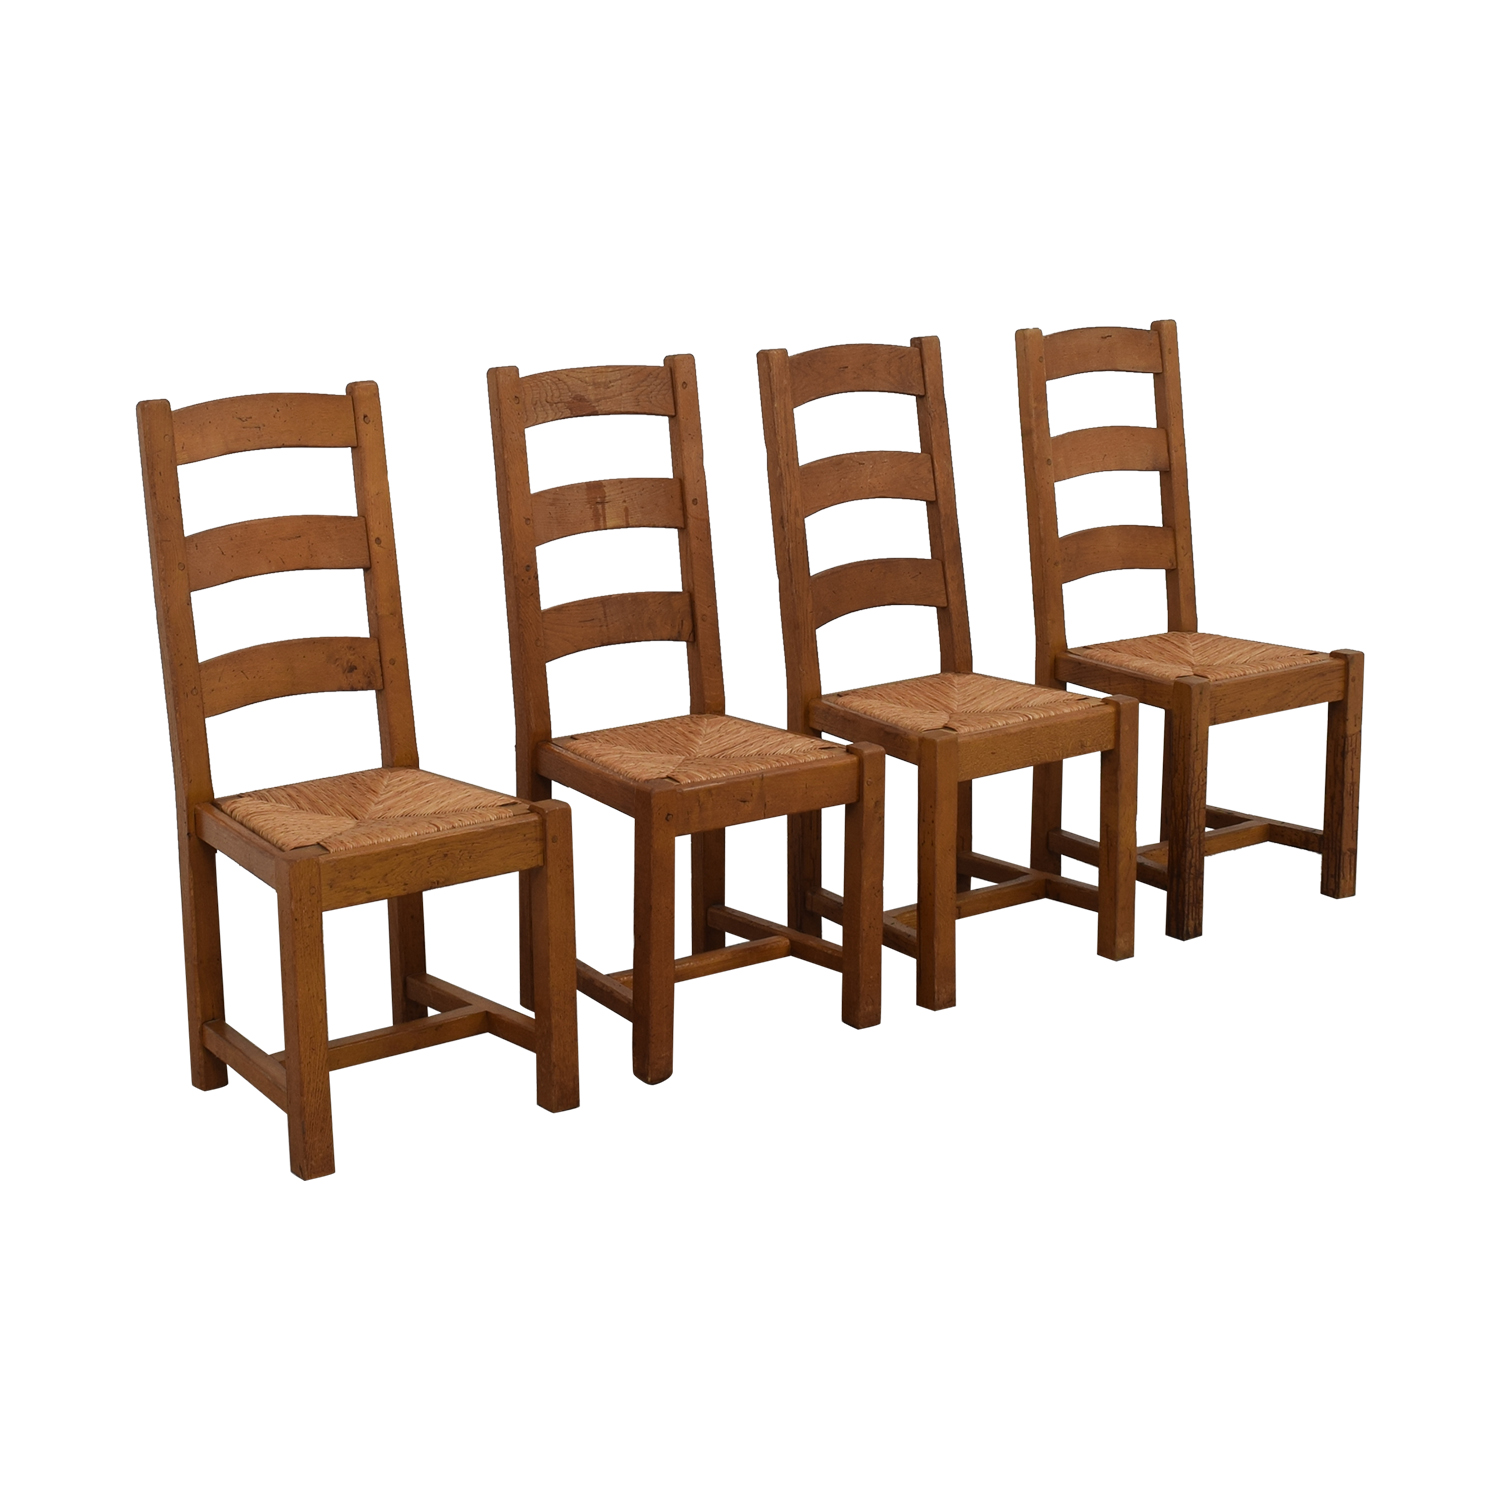 buy Crate & Barrel French Farm Dining Chairs Crate & Barrel